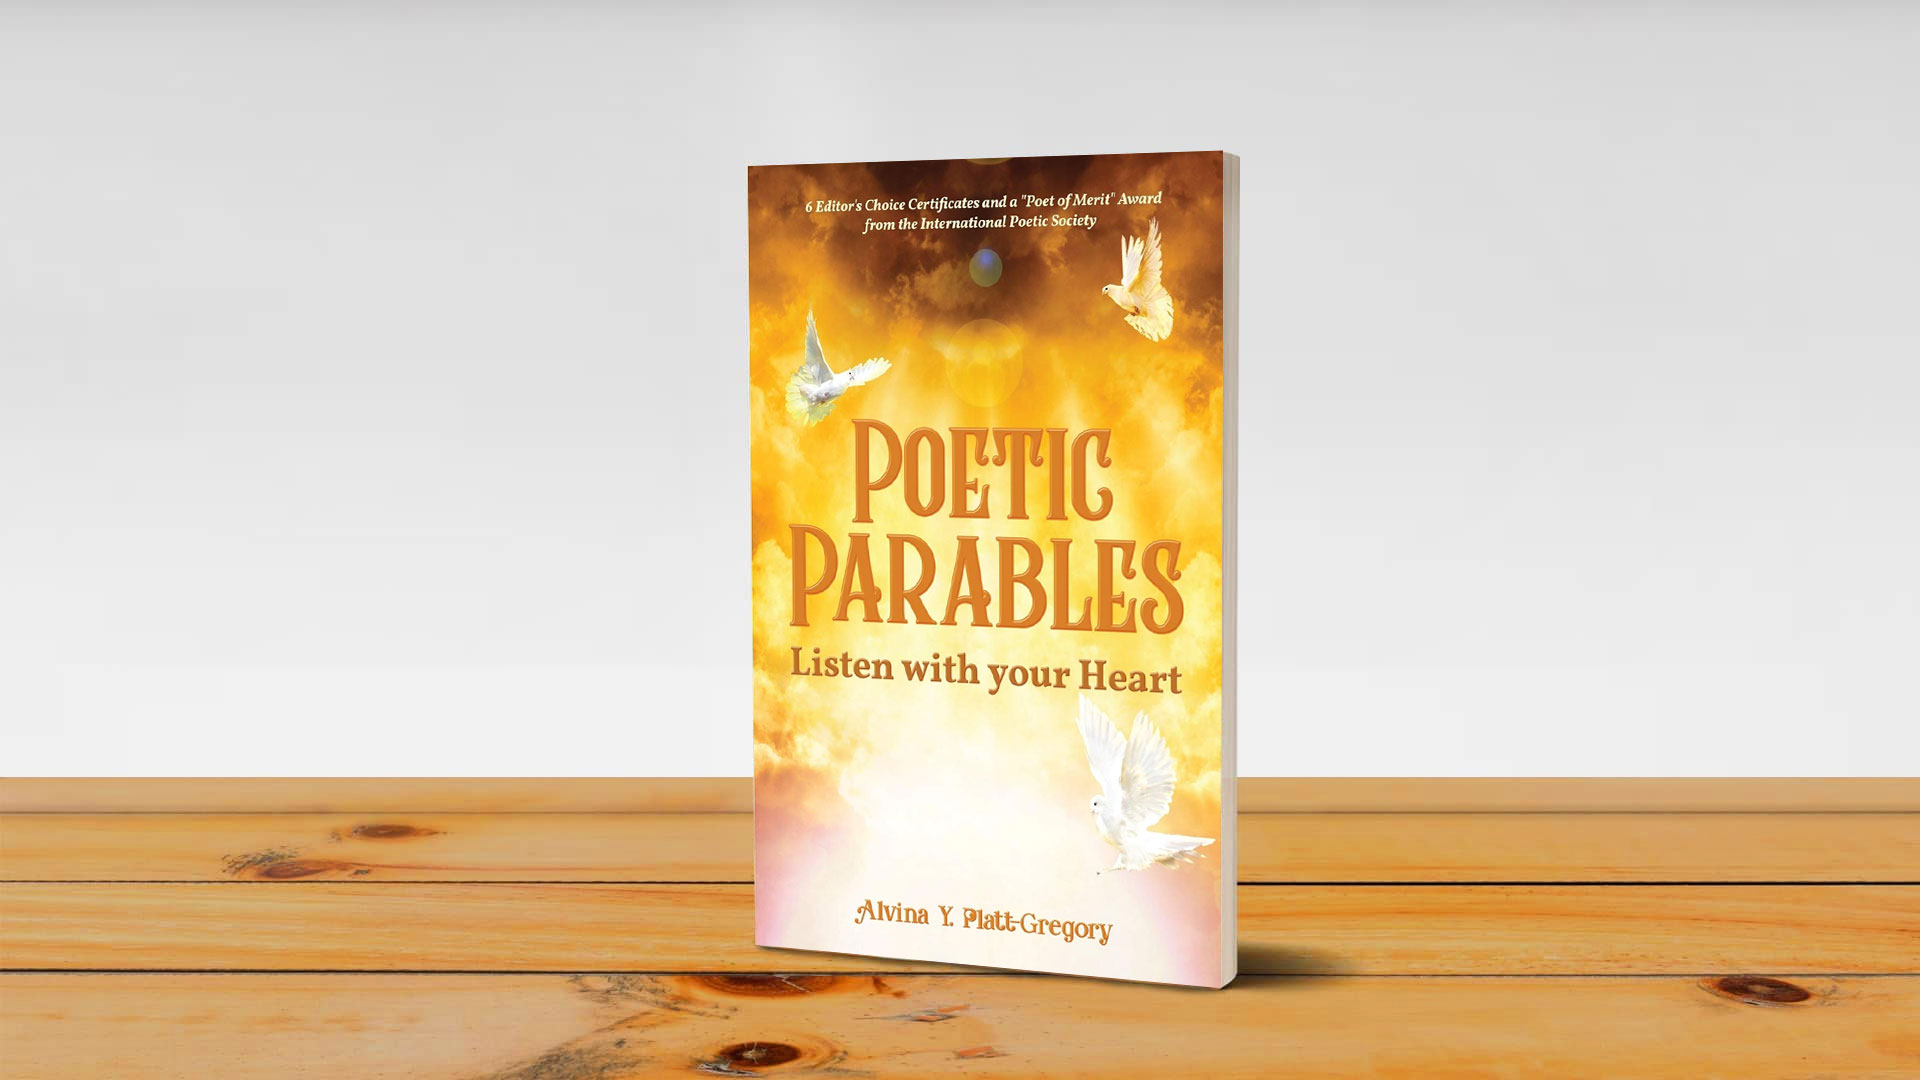 ook-Feature-Poetic-Parables-by-Alvina-Platt-Gregory banner